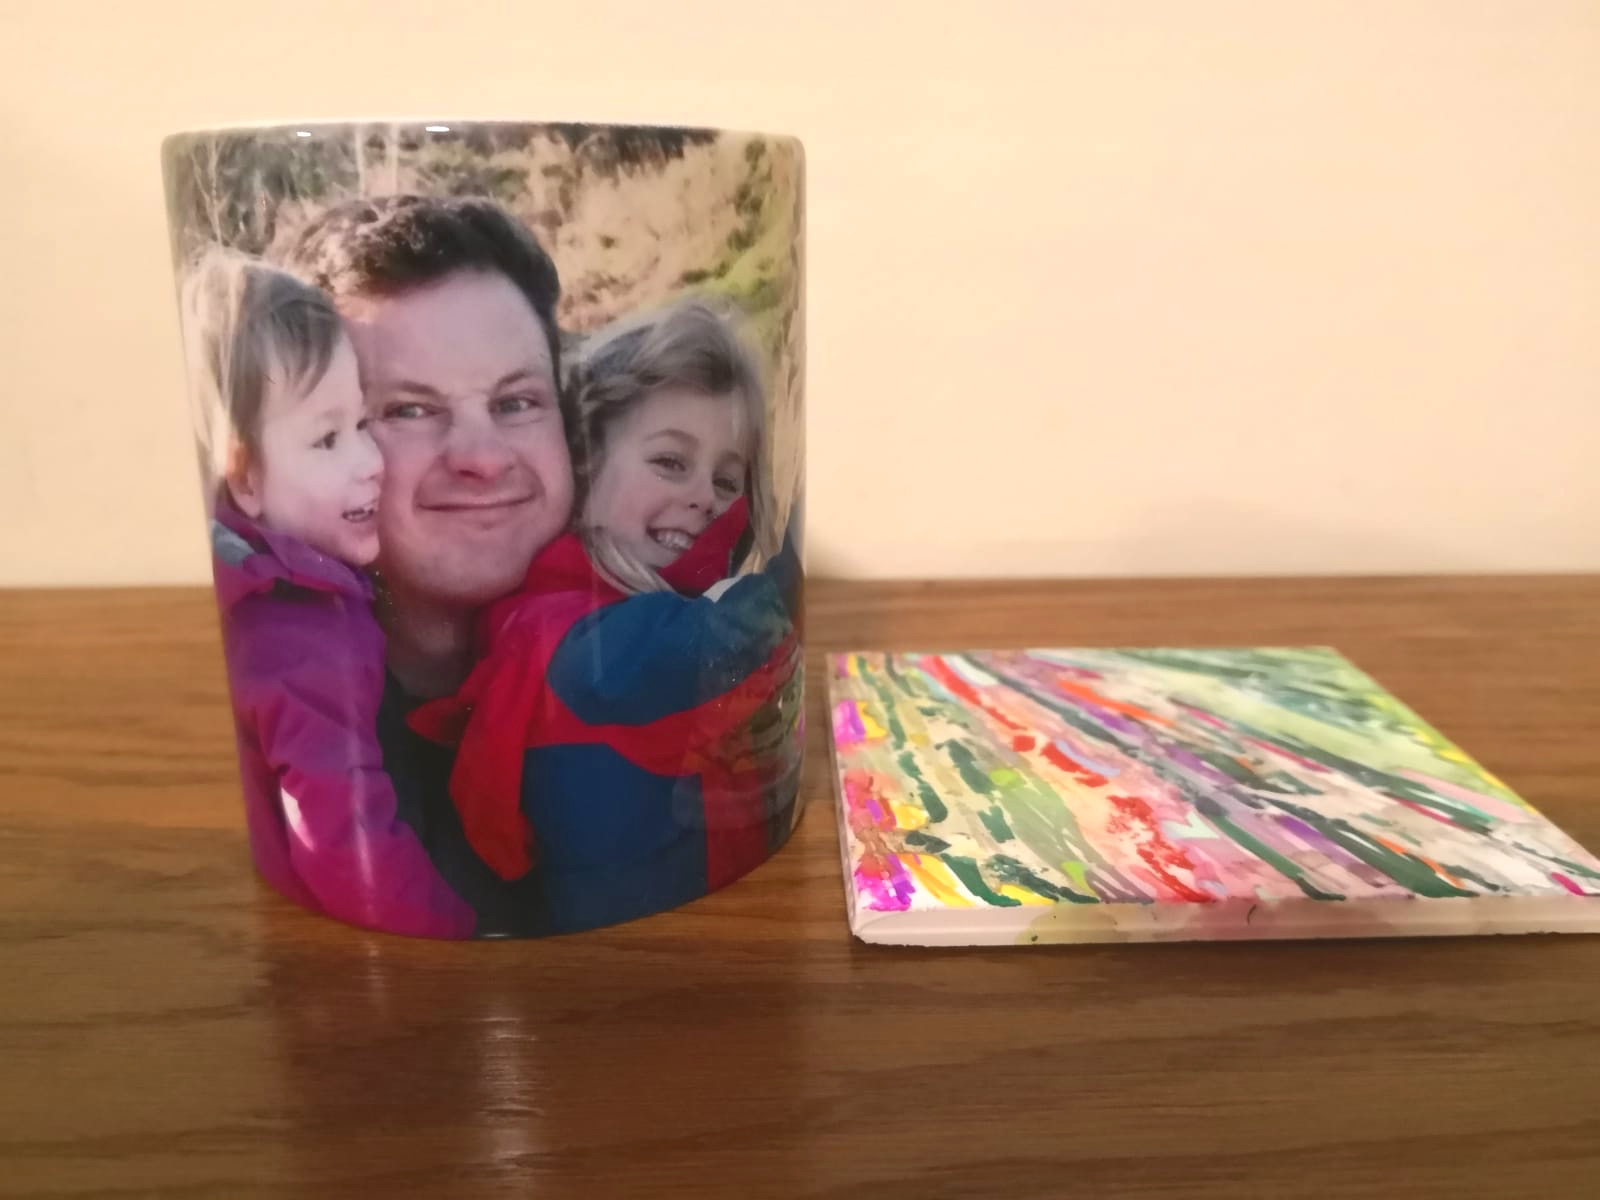 Her tile in situ with the mug we sent Daddy Big Foot all the way across the globe. She was very proud of her tile.